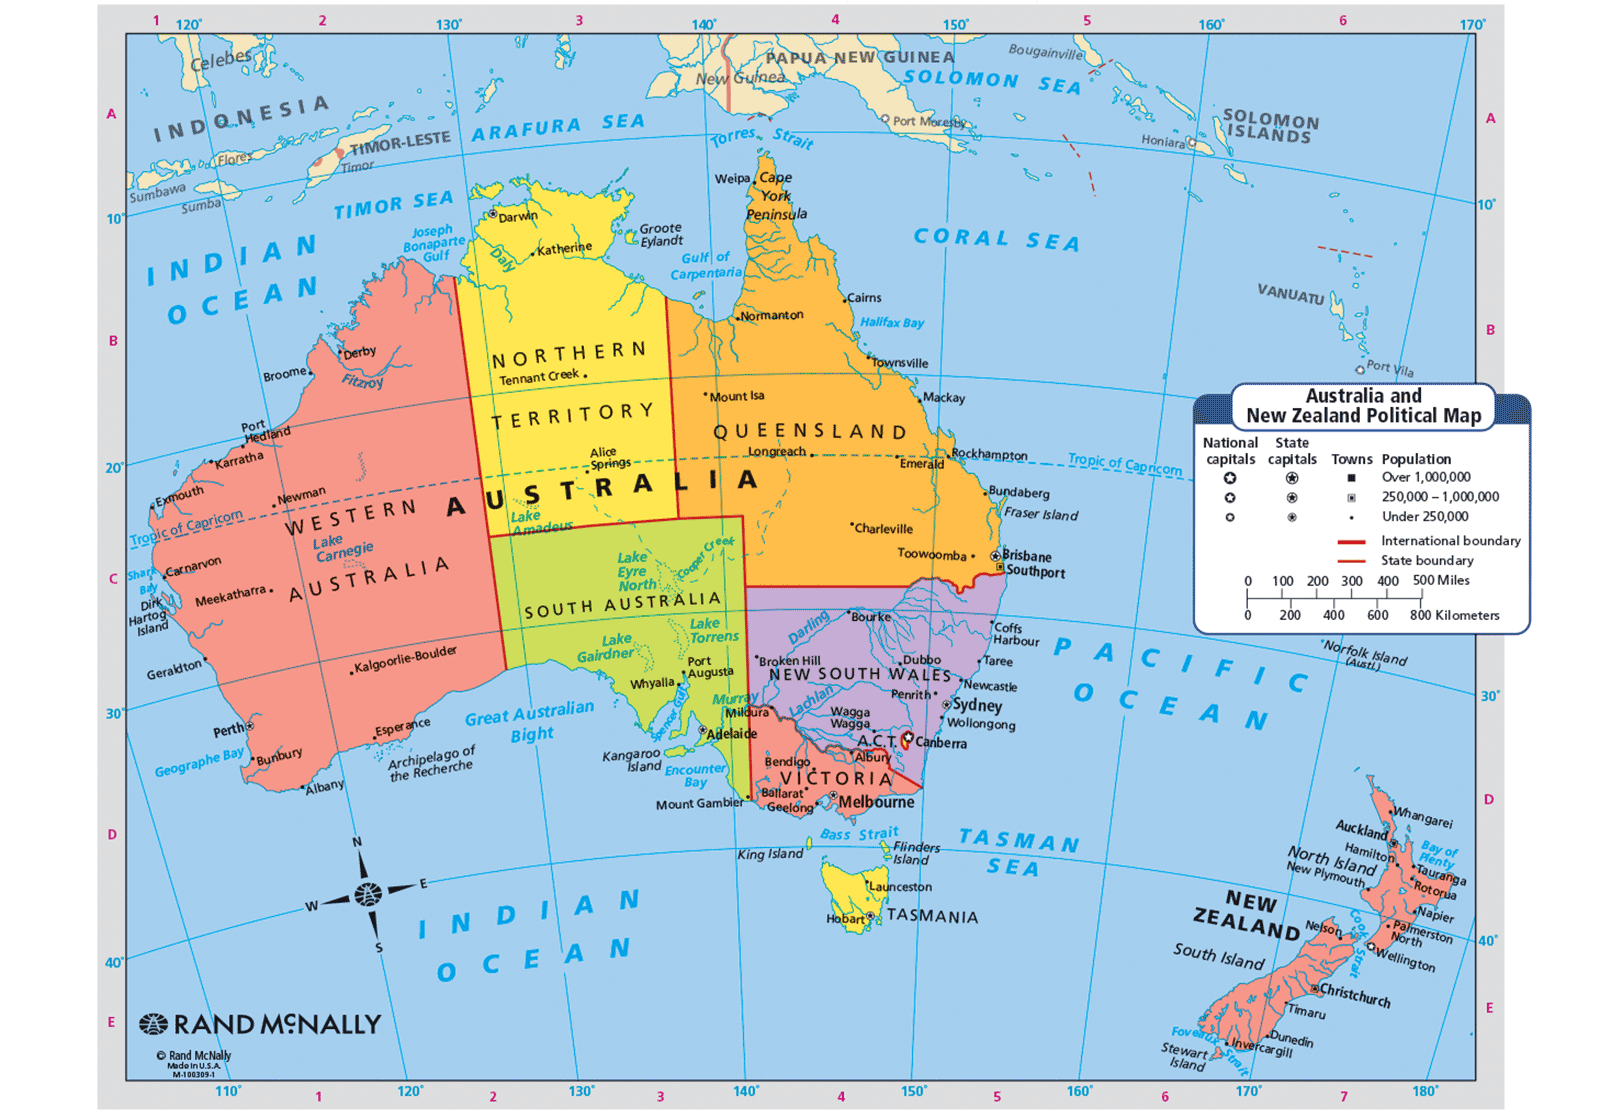 Map of new zealand and australia world map science pinterest map of new zealand and australia world map gumiabroncs Image collections